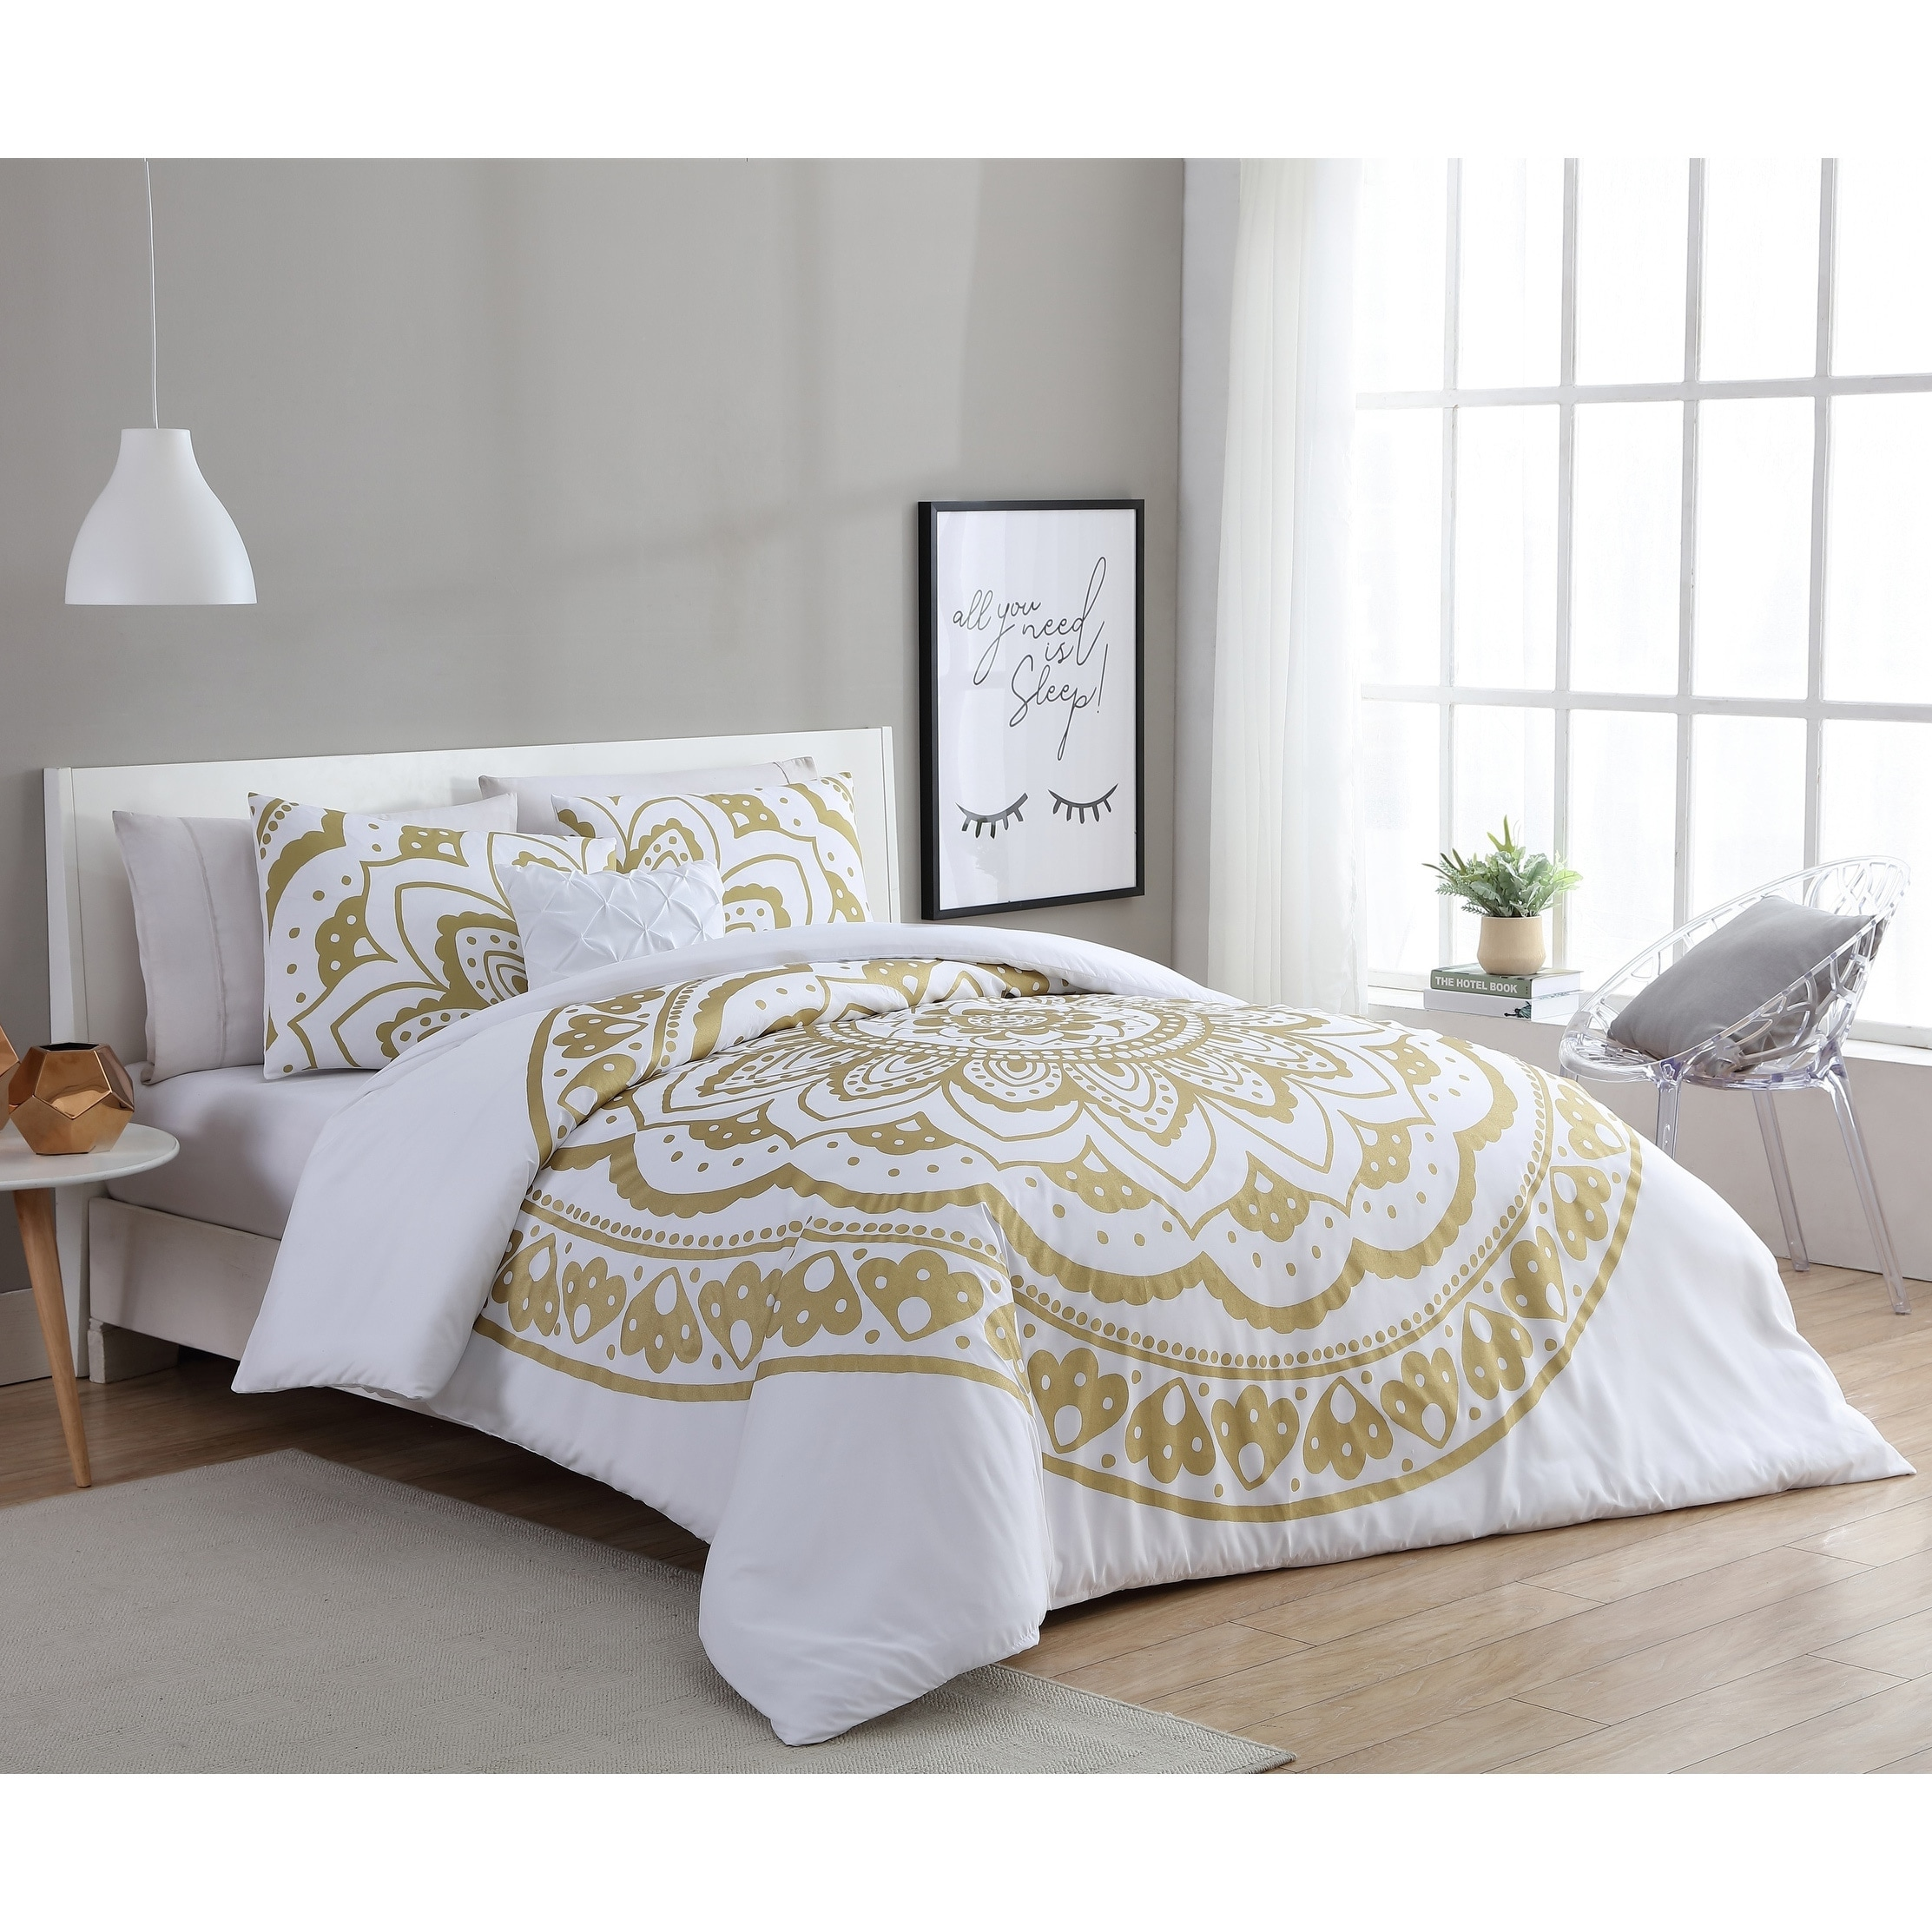 e52a9a6378fd Shop VCNY Home Karma 4-piece Comforter Set - On Sale - Free Shipping Today  - Overstock - 18543332